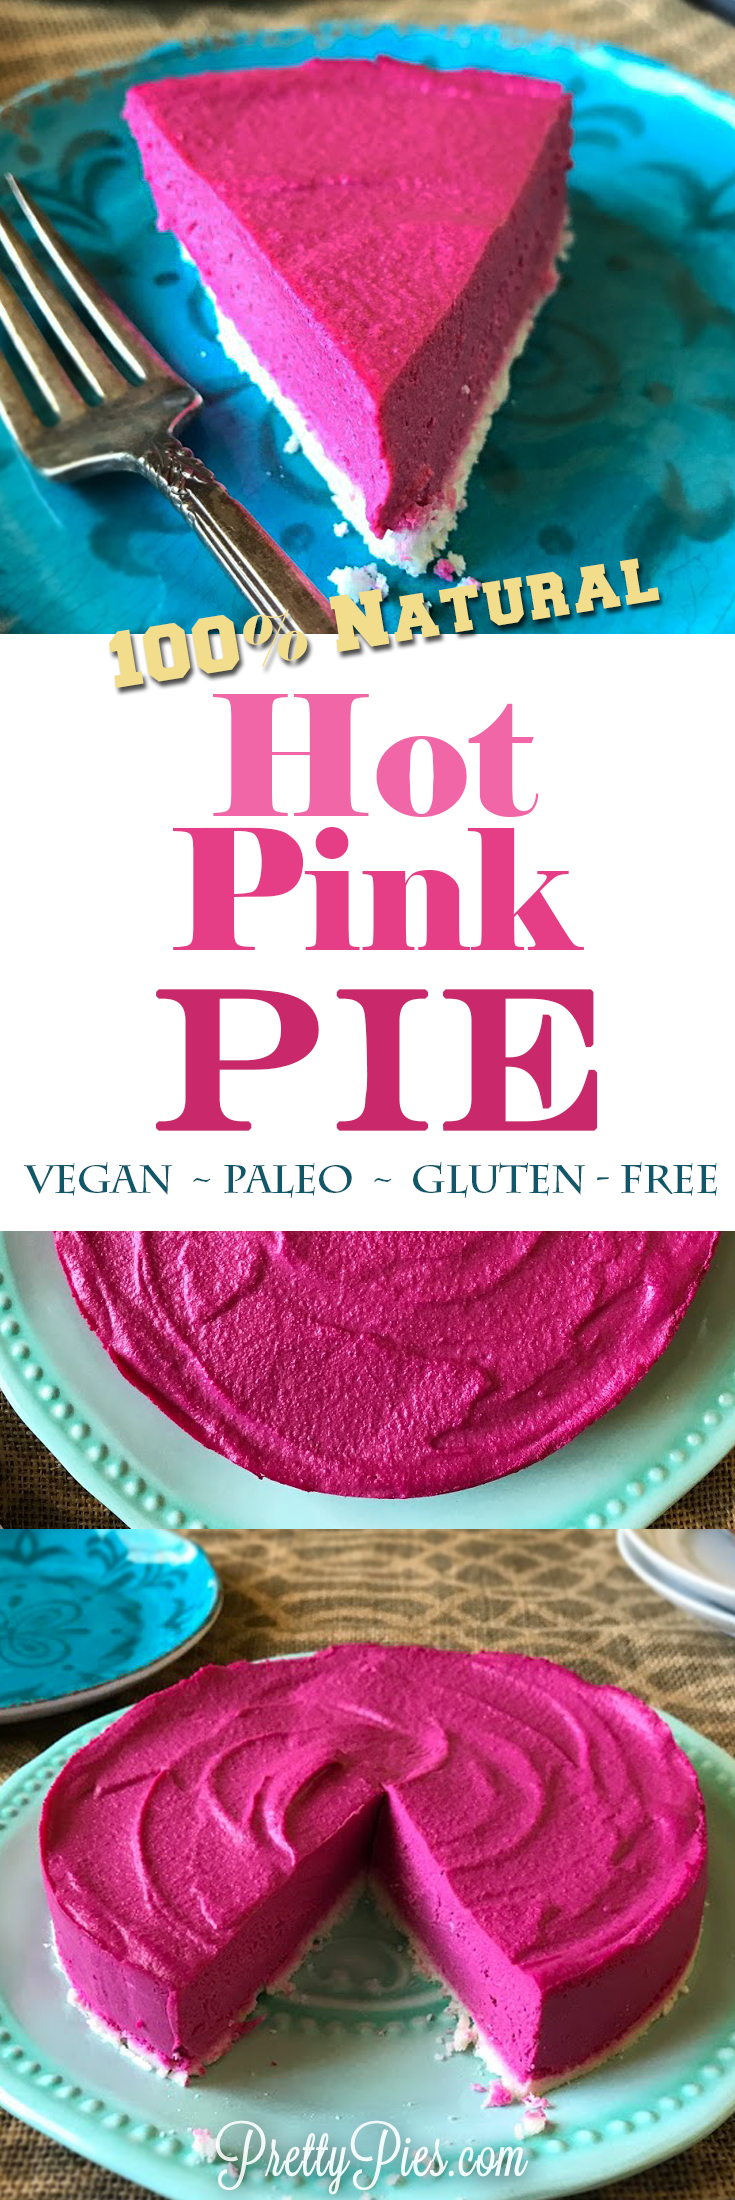 No food coloring in this hot pink pie! The pink is 100% natural ...